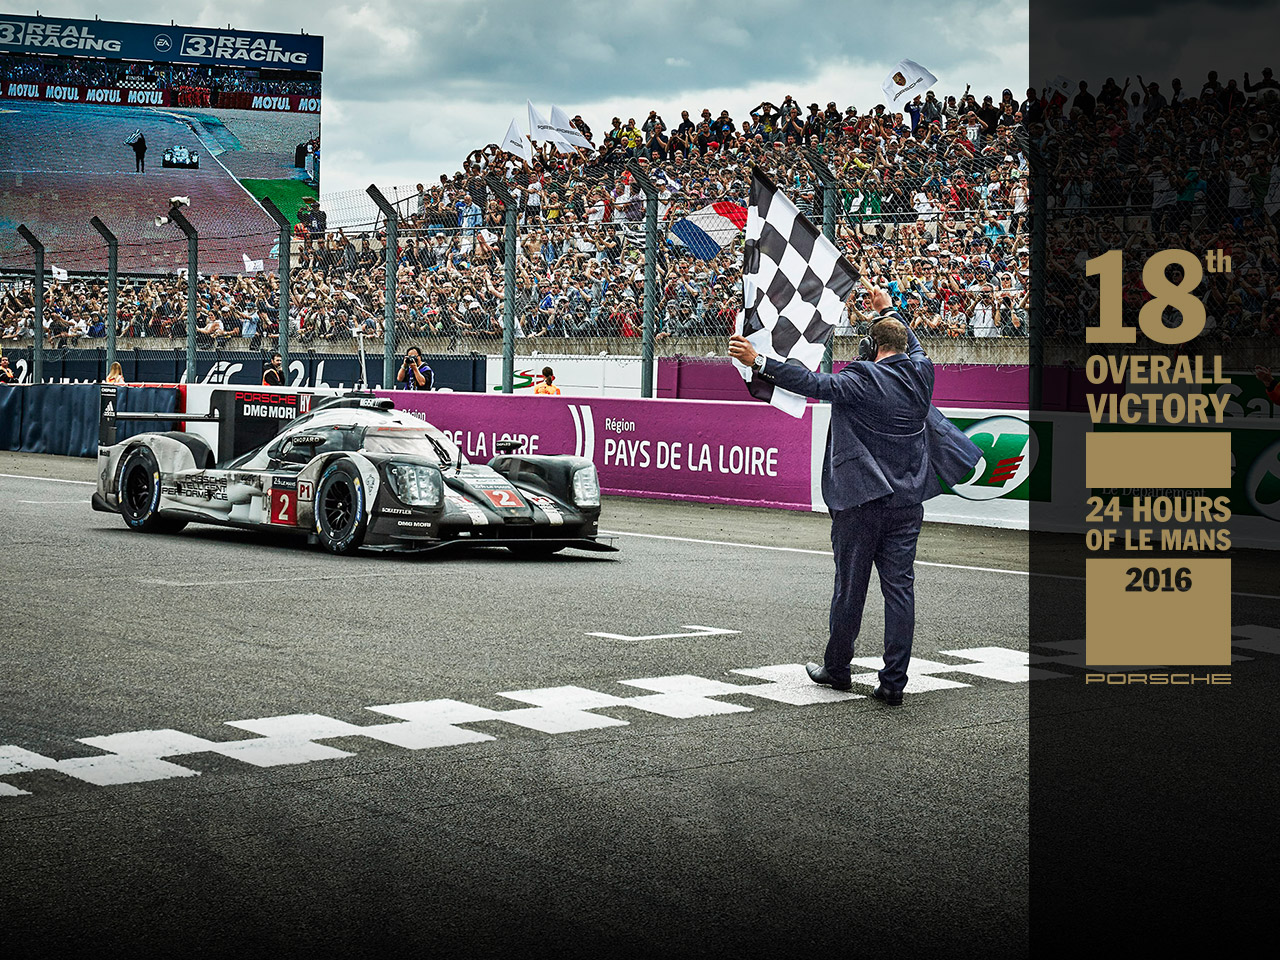 Porsche Porsche wins the 24h of Le Mans.